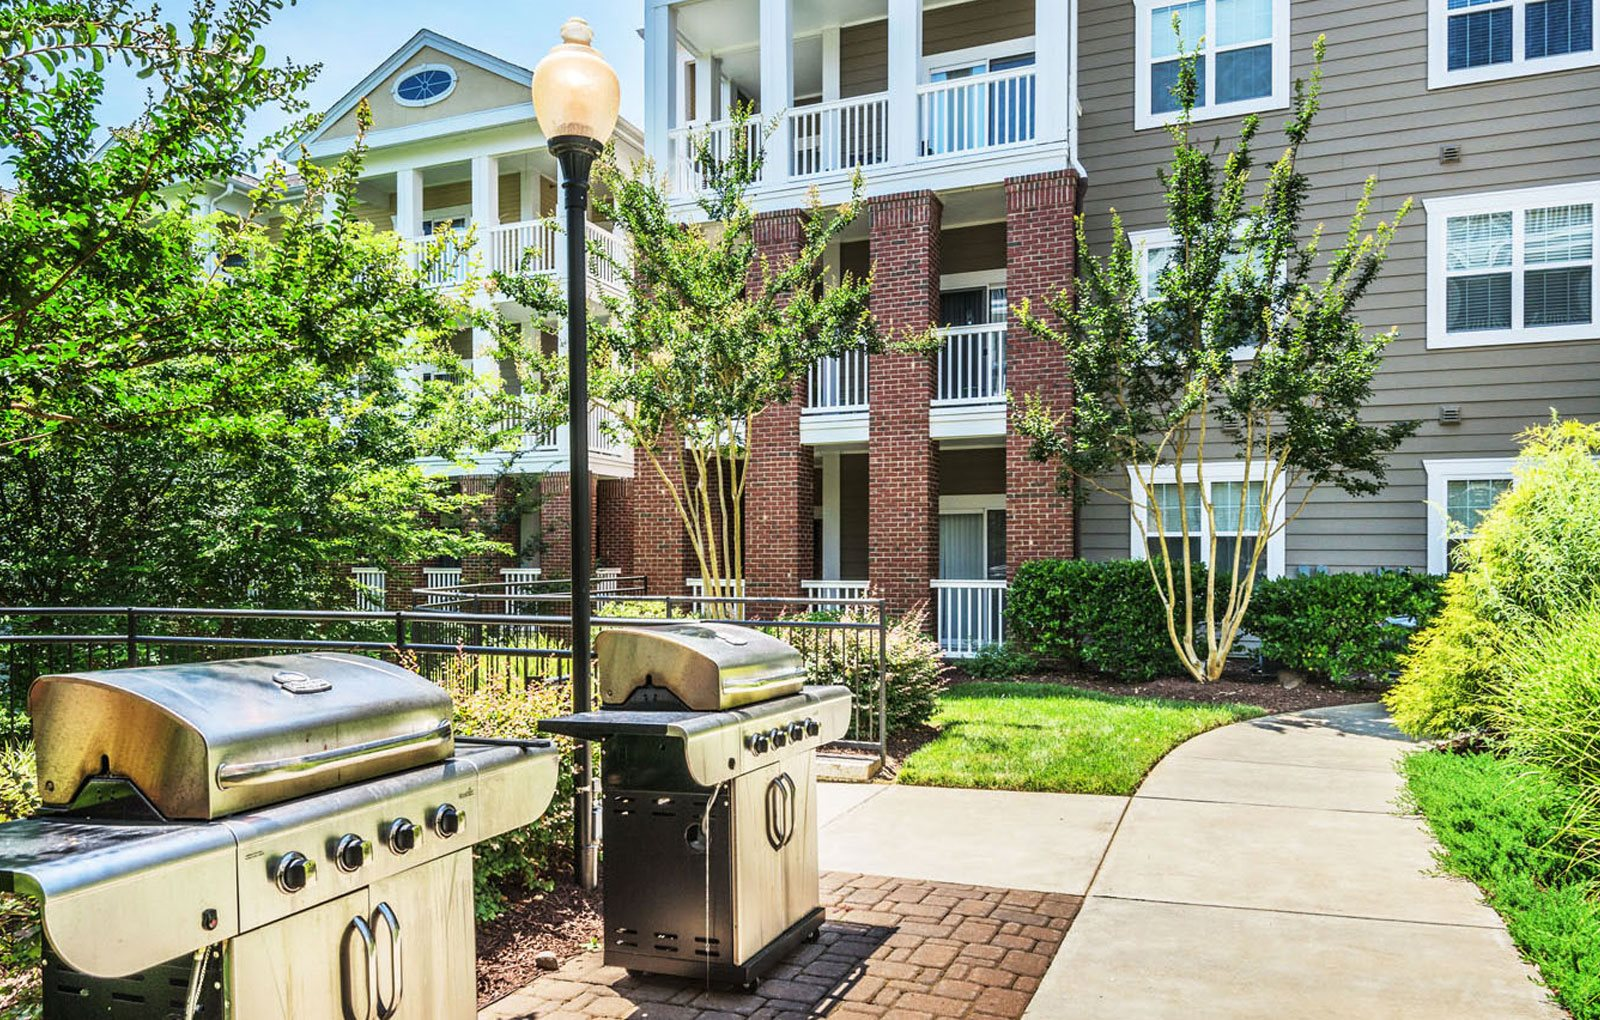 Grilling stations at Rose Heights apartments, Raleigh, North Carolina